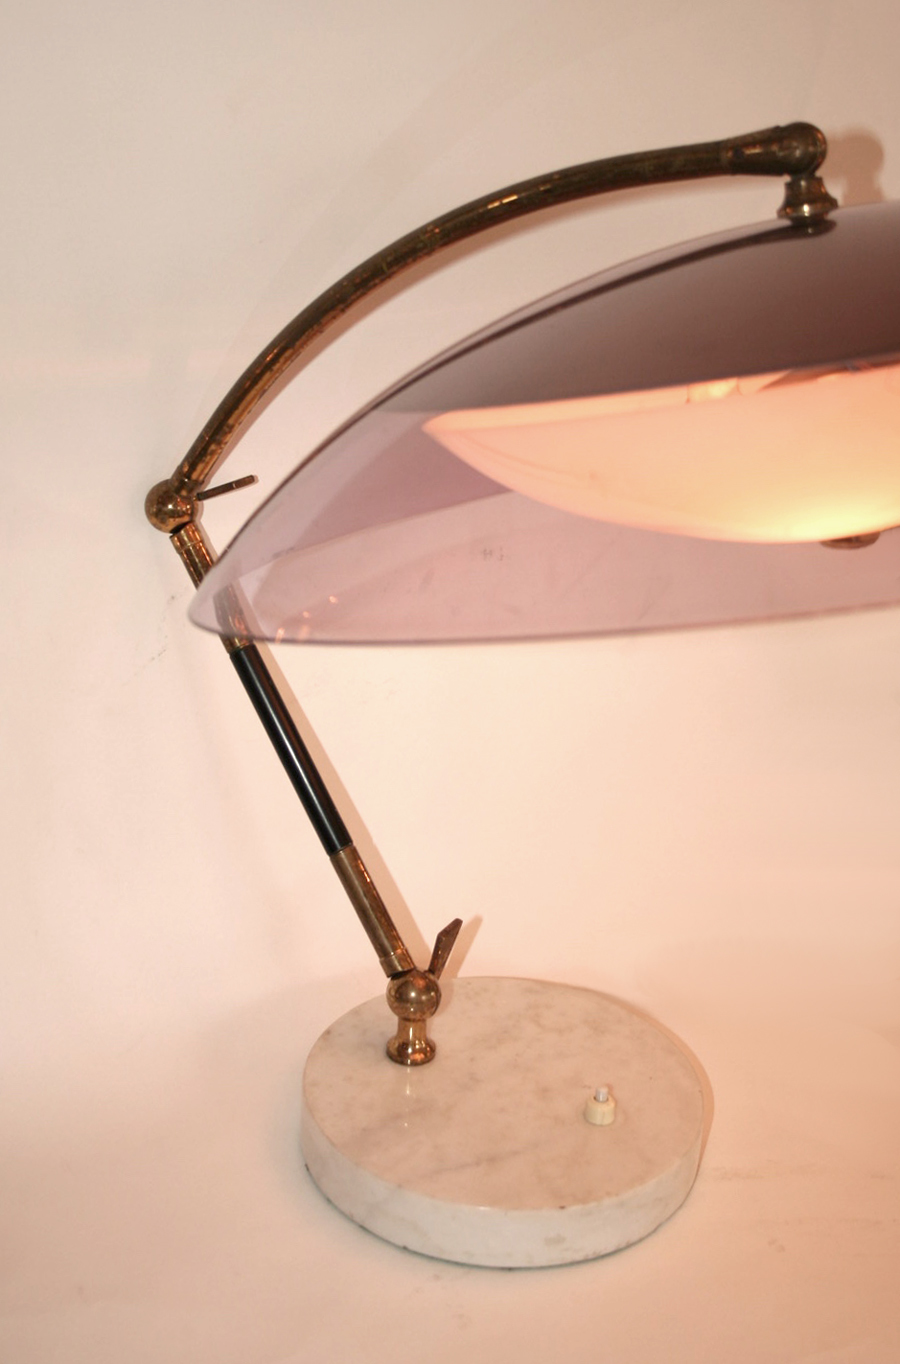 Valerie Wade Lt629 1950S Italian Articulated Dome Lamp Stilux 02